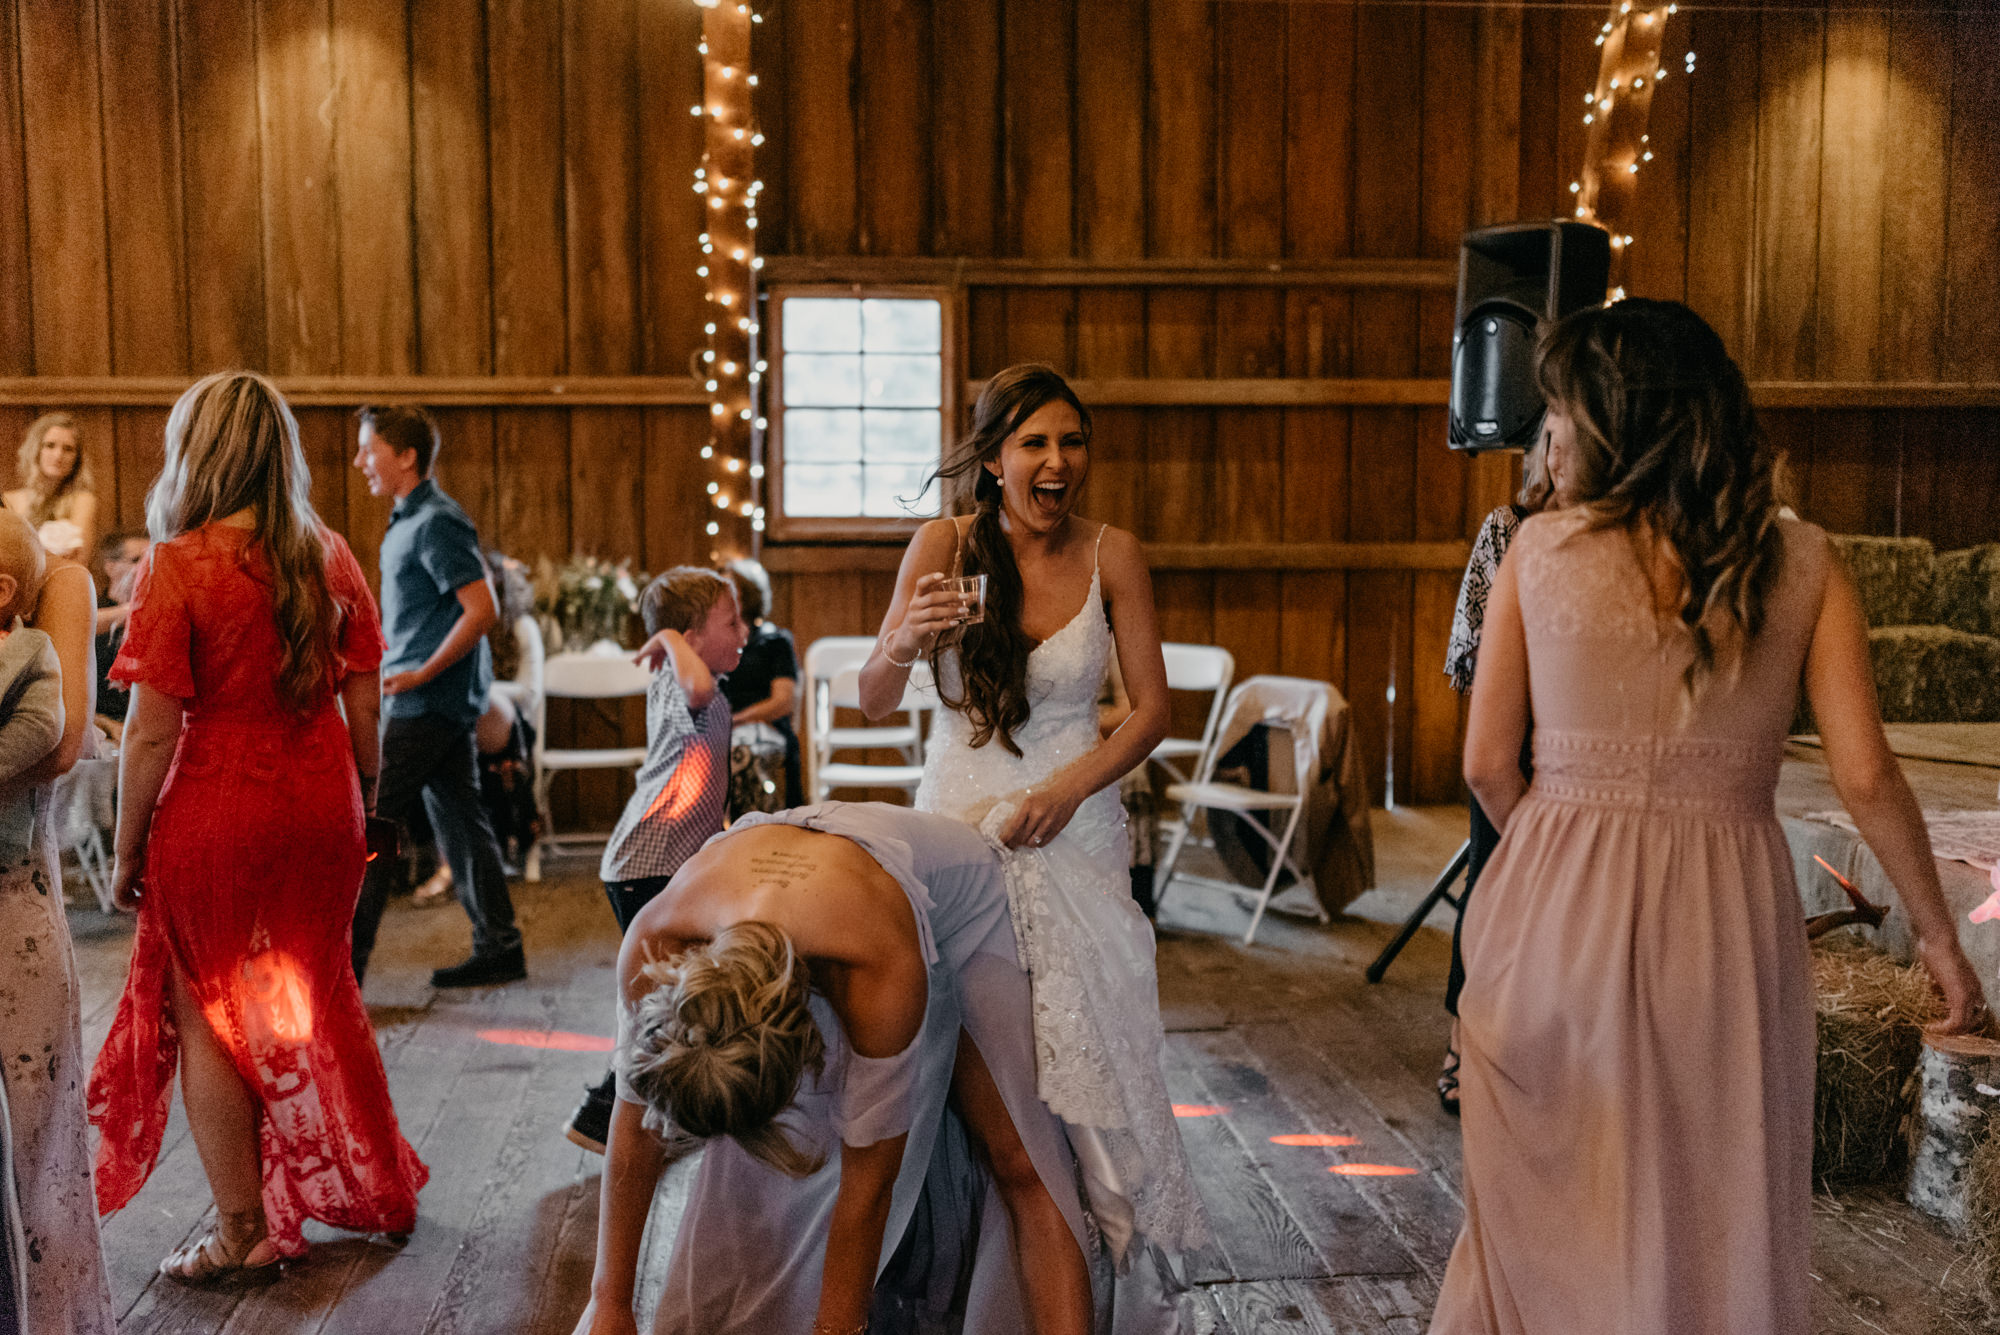 202-portland-northwest-wedding-bubble-exit-barn-string-lights.jpg